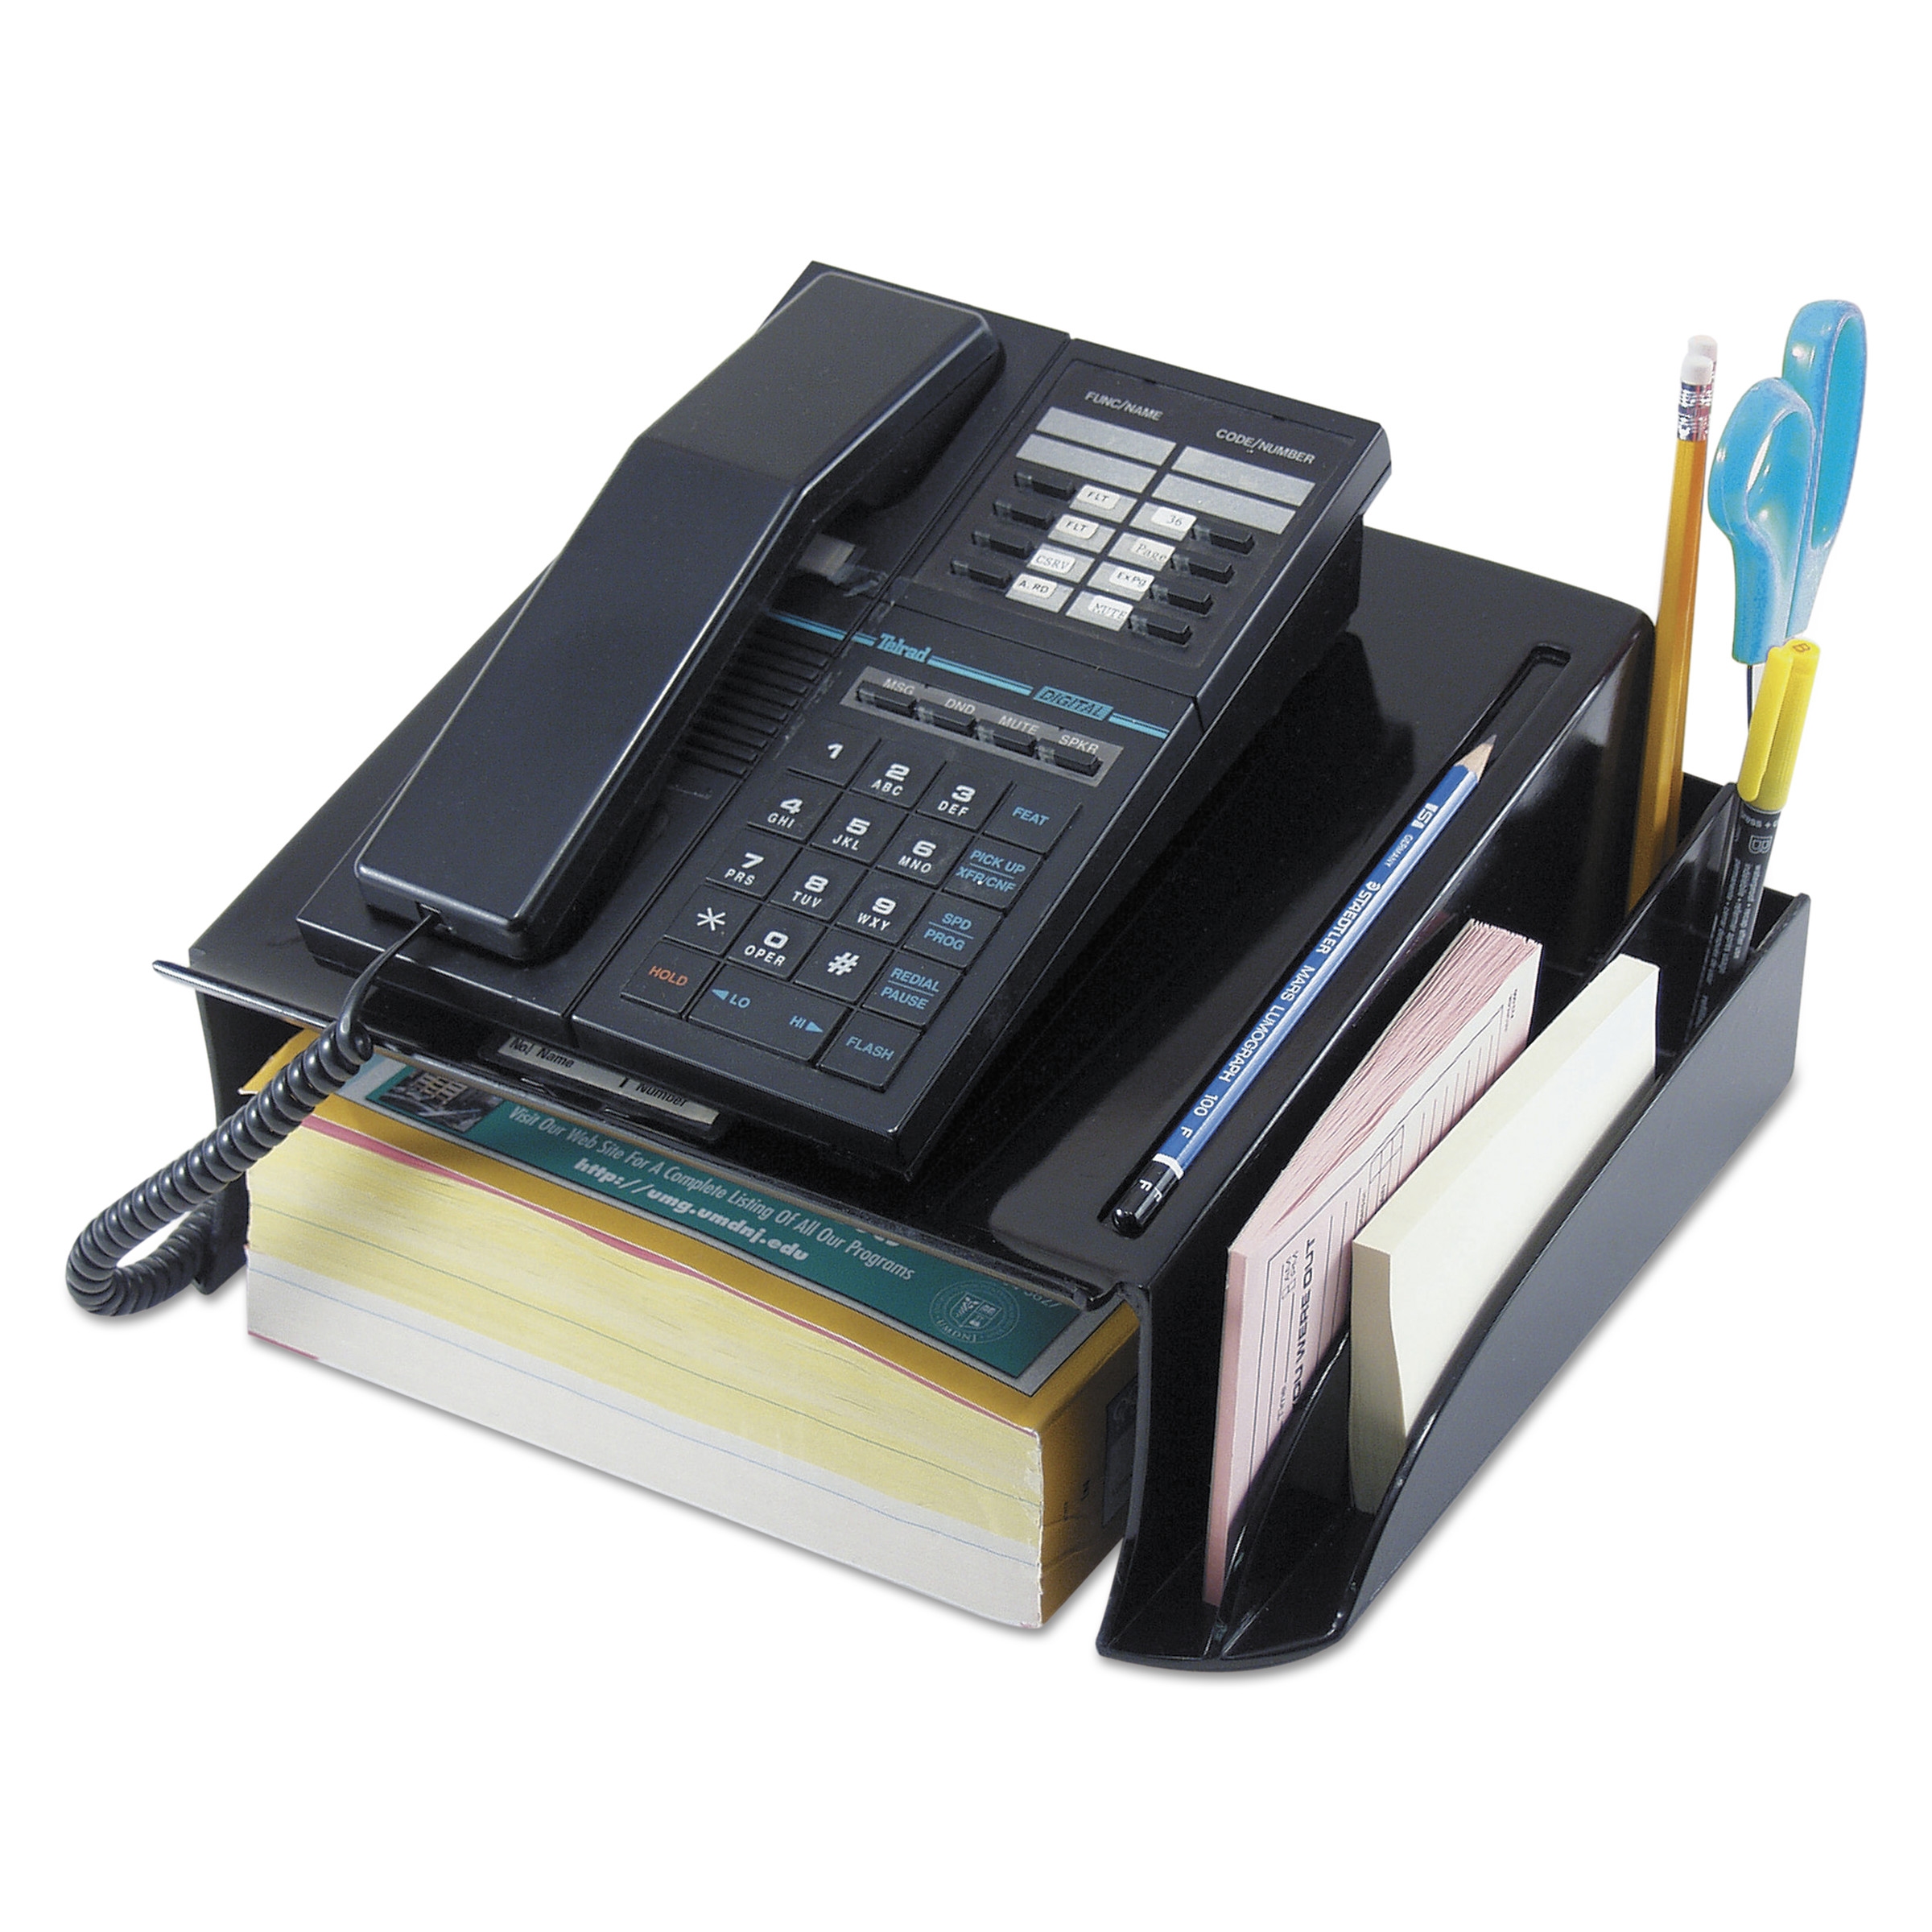 Universal Telephone Stand and Message Center, 12 1/4 x 10 1/2 x 5 1/4, Black -UNV08116